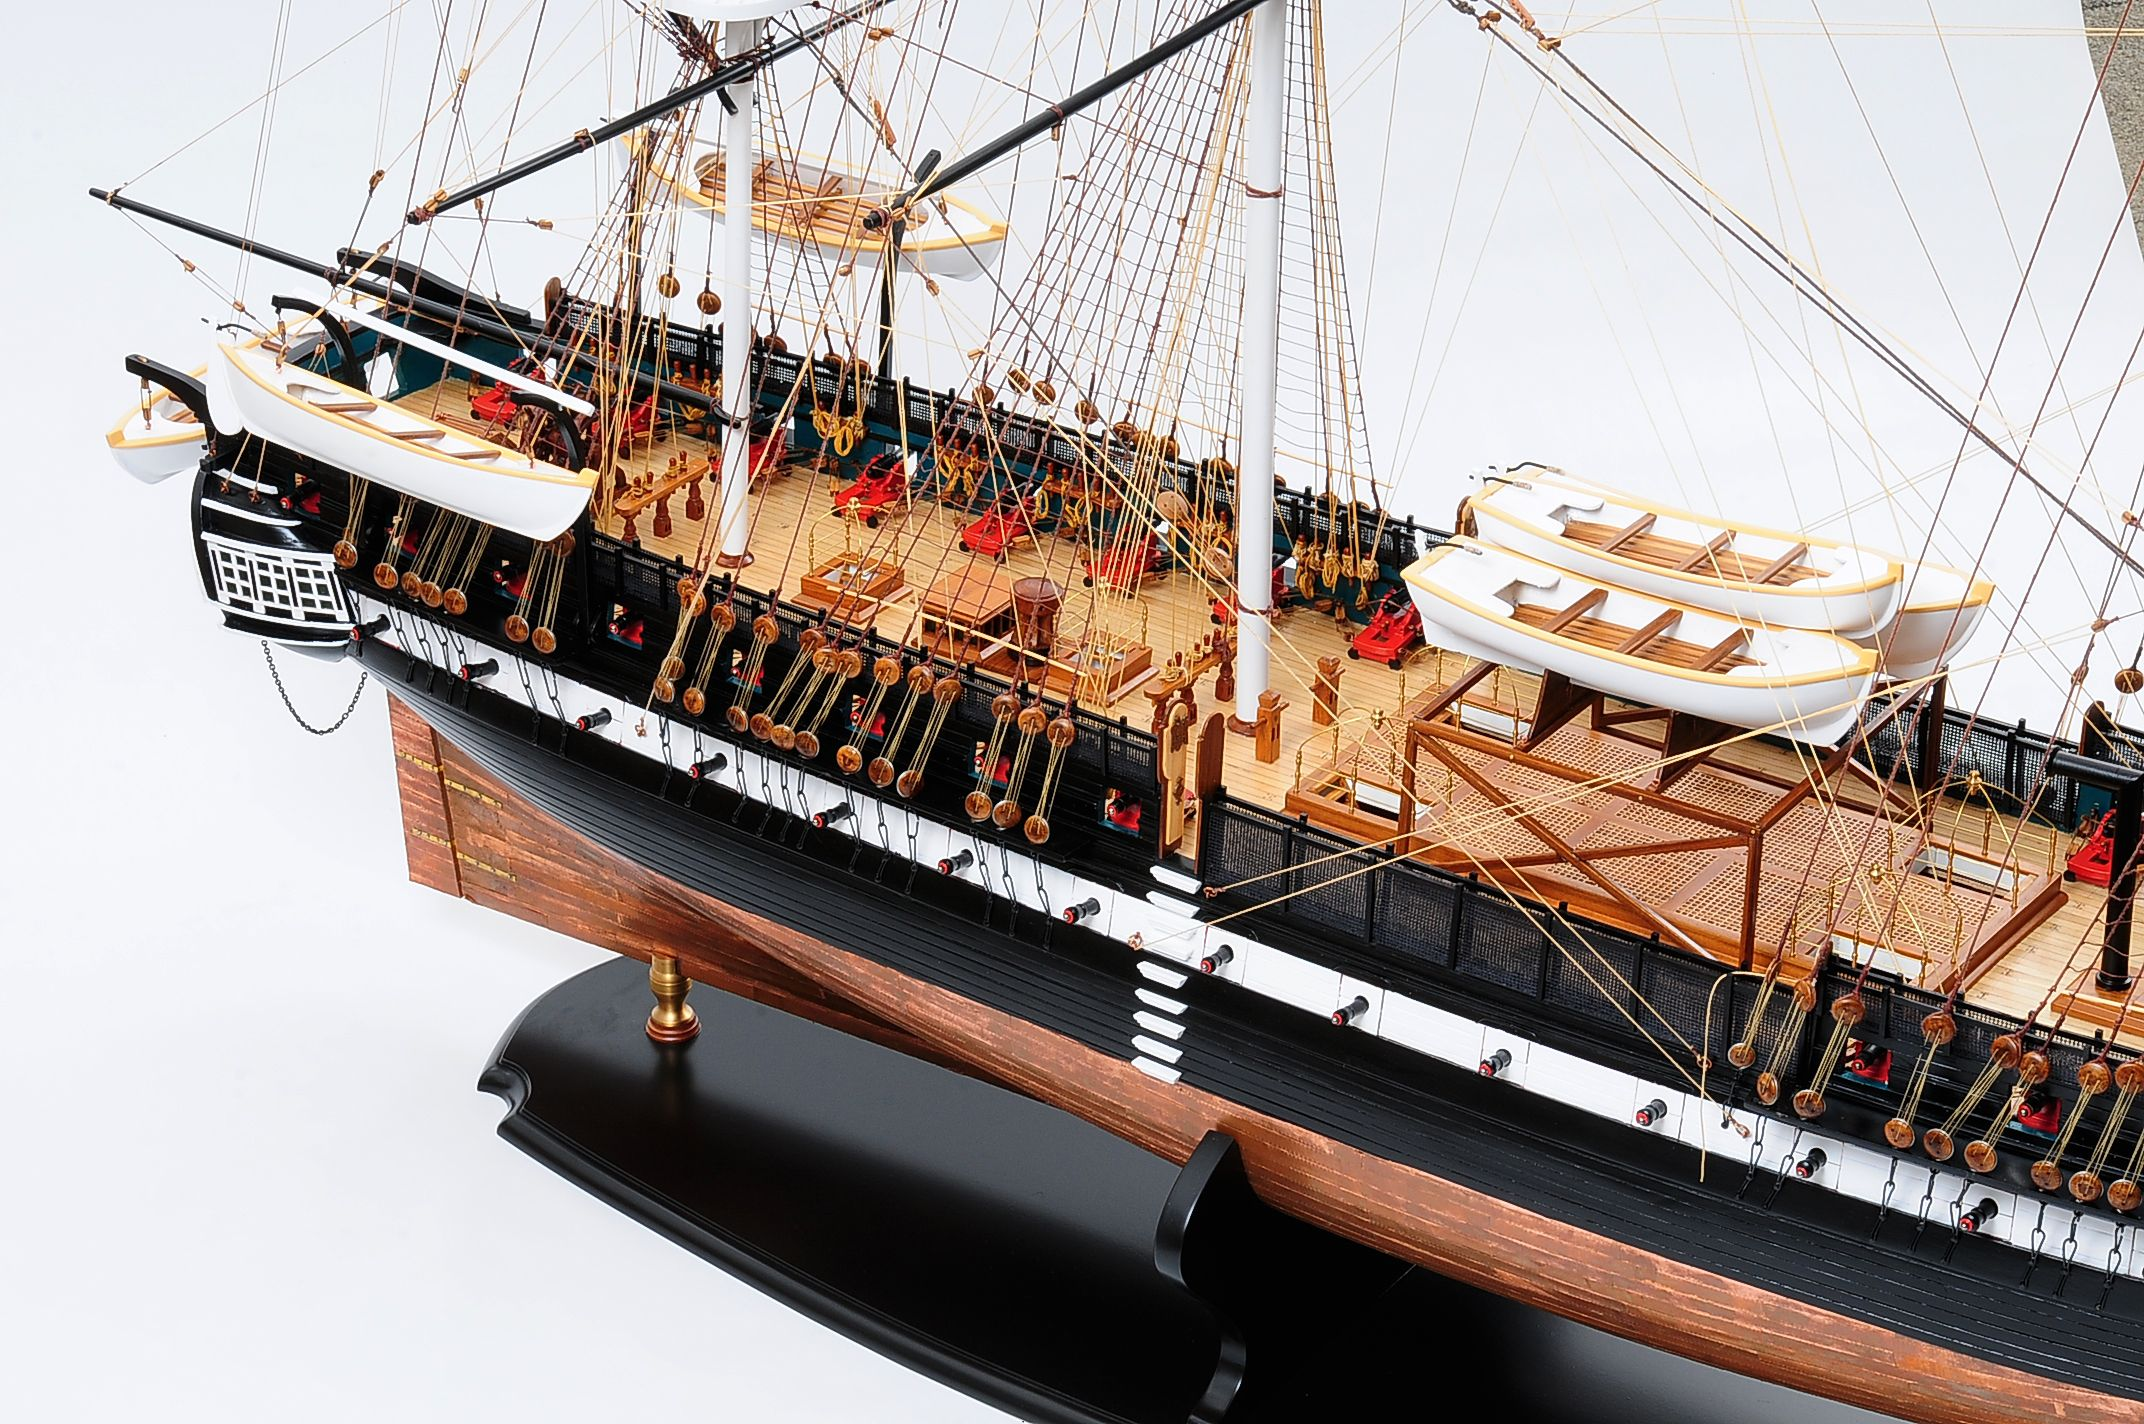 1258-7863-USS-Constitution-Model-Ship-Premier-Range